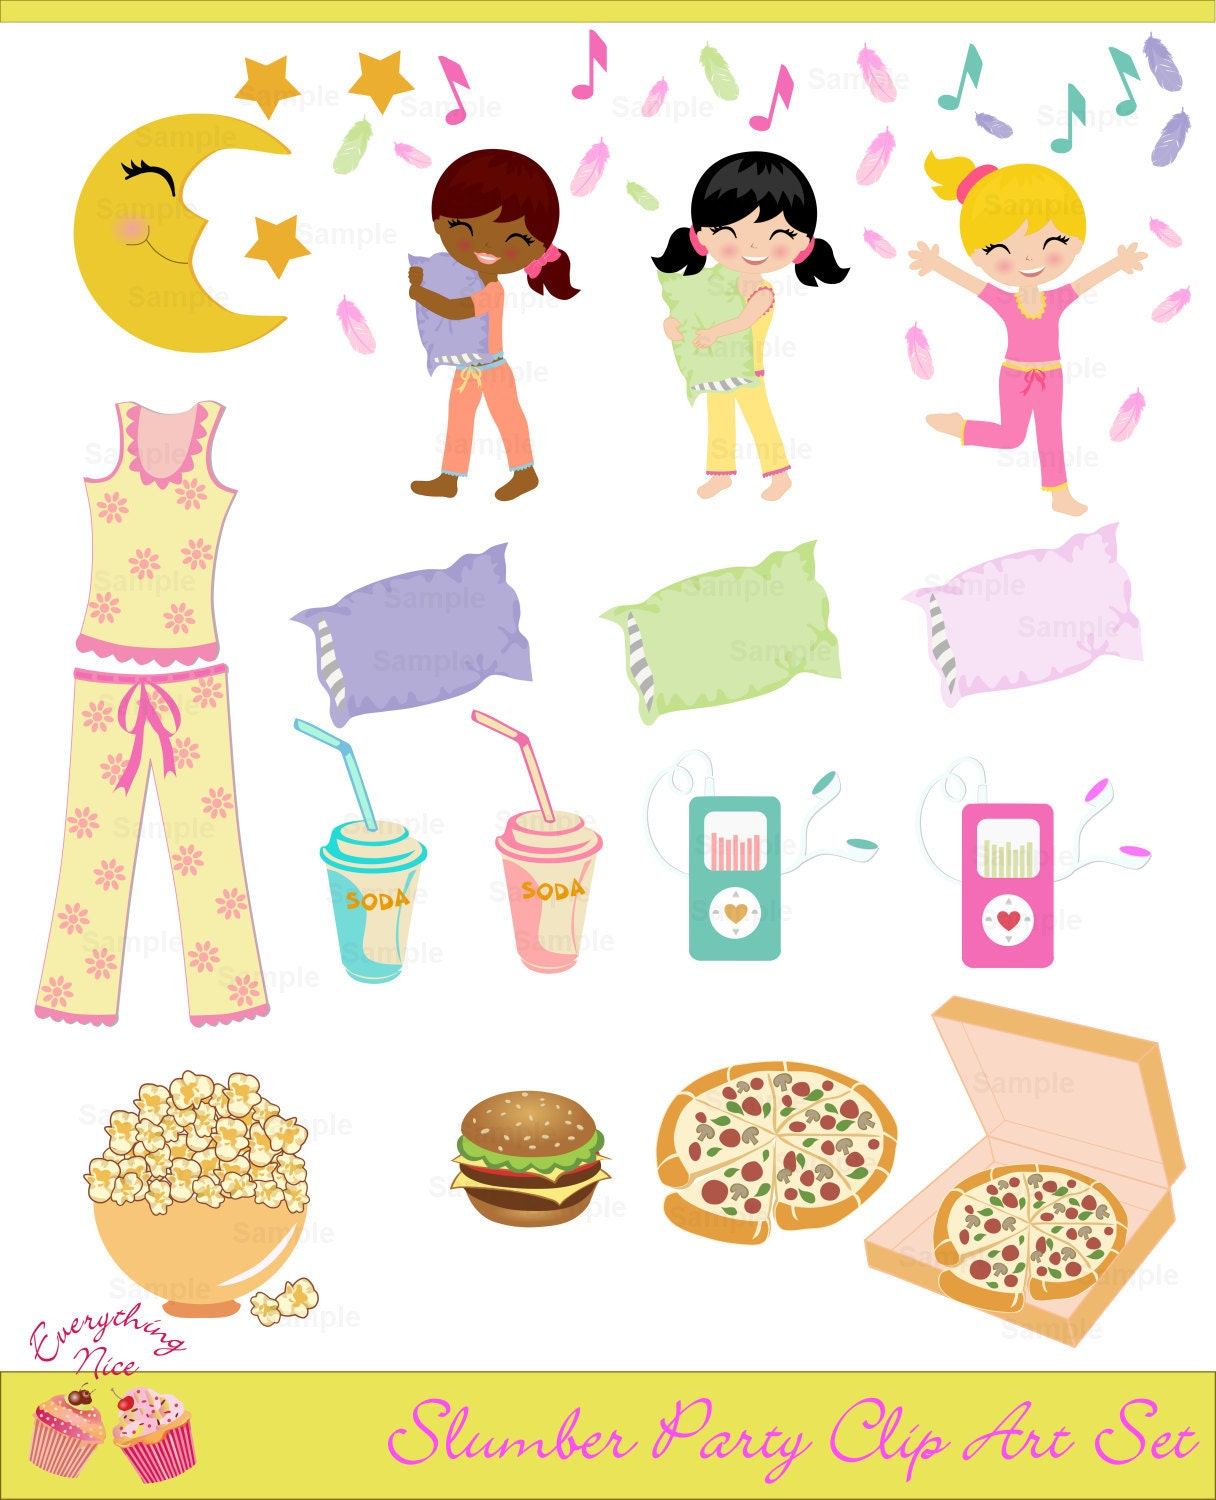 Slumber Party Clip Art Set by 1EverythingNice on Etsy